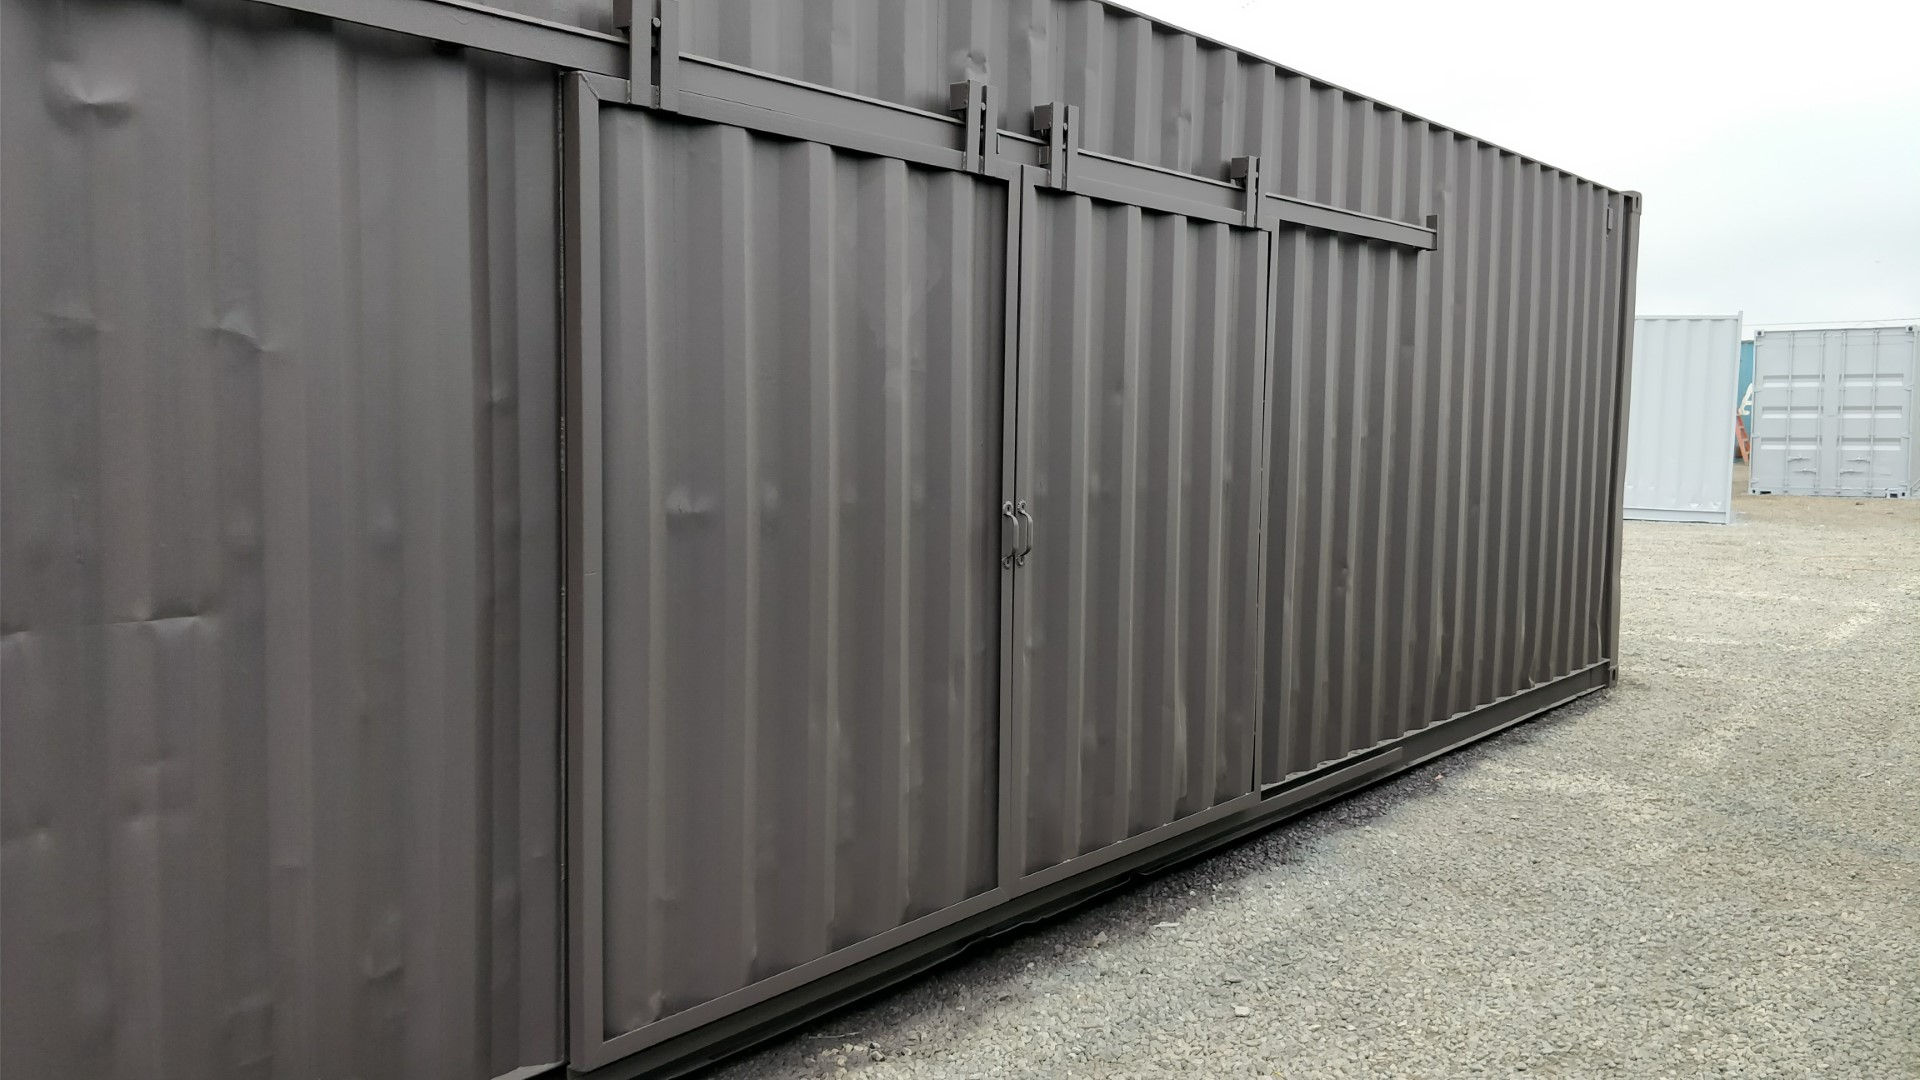 Barn Doors for Containers